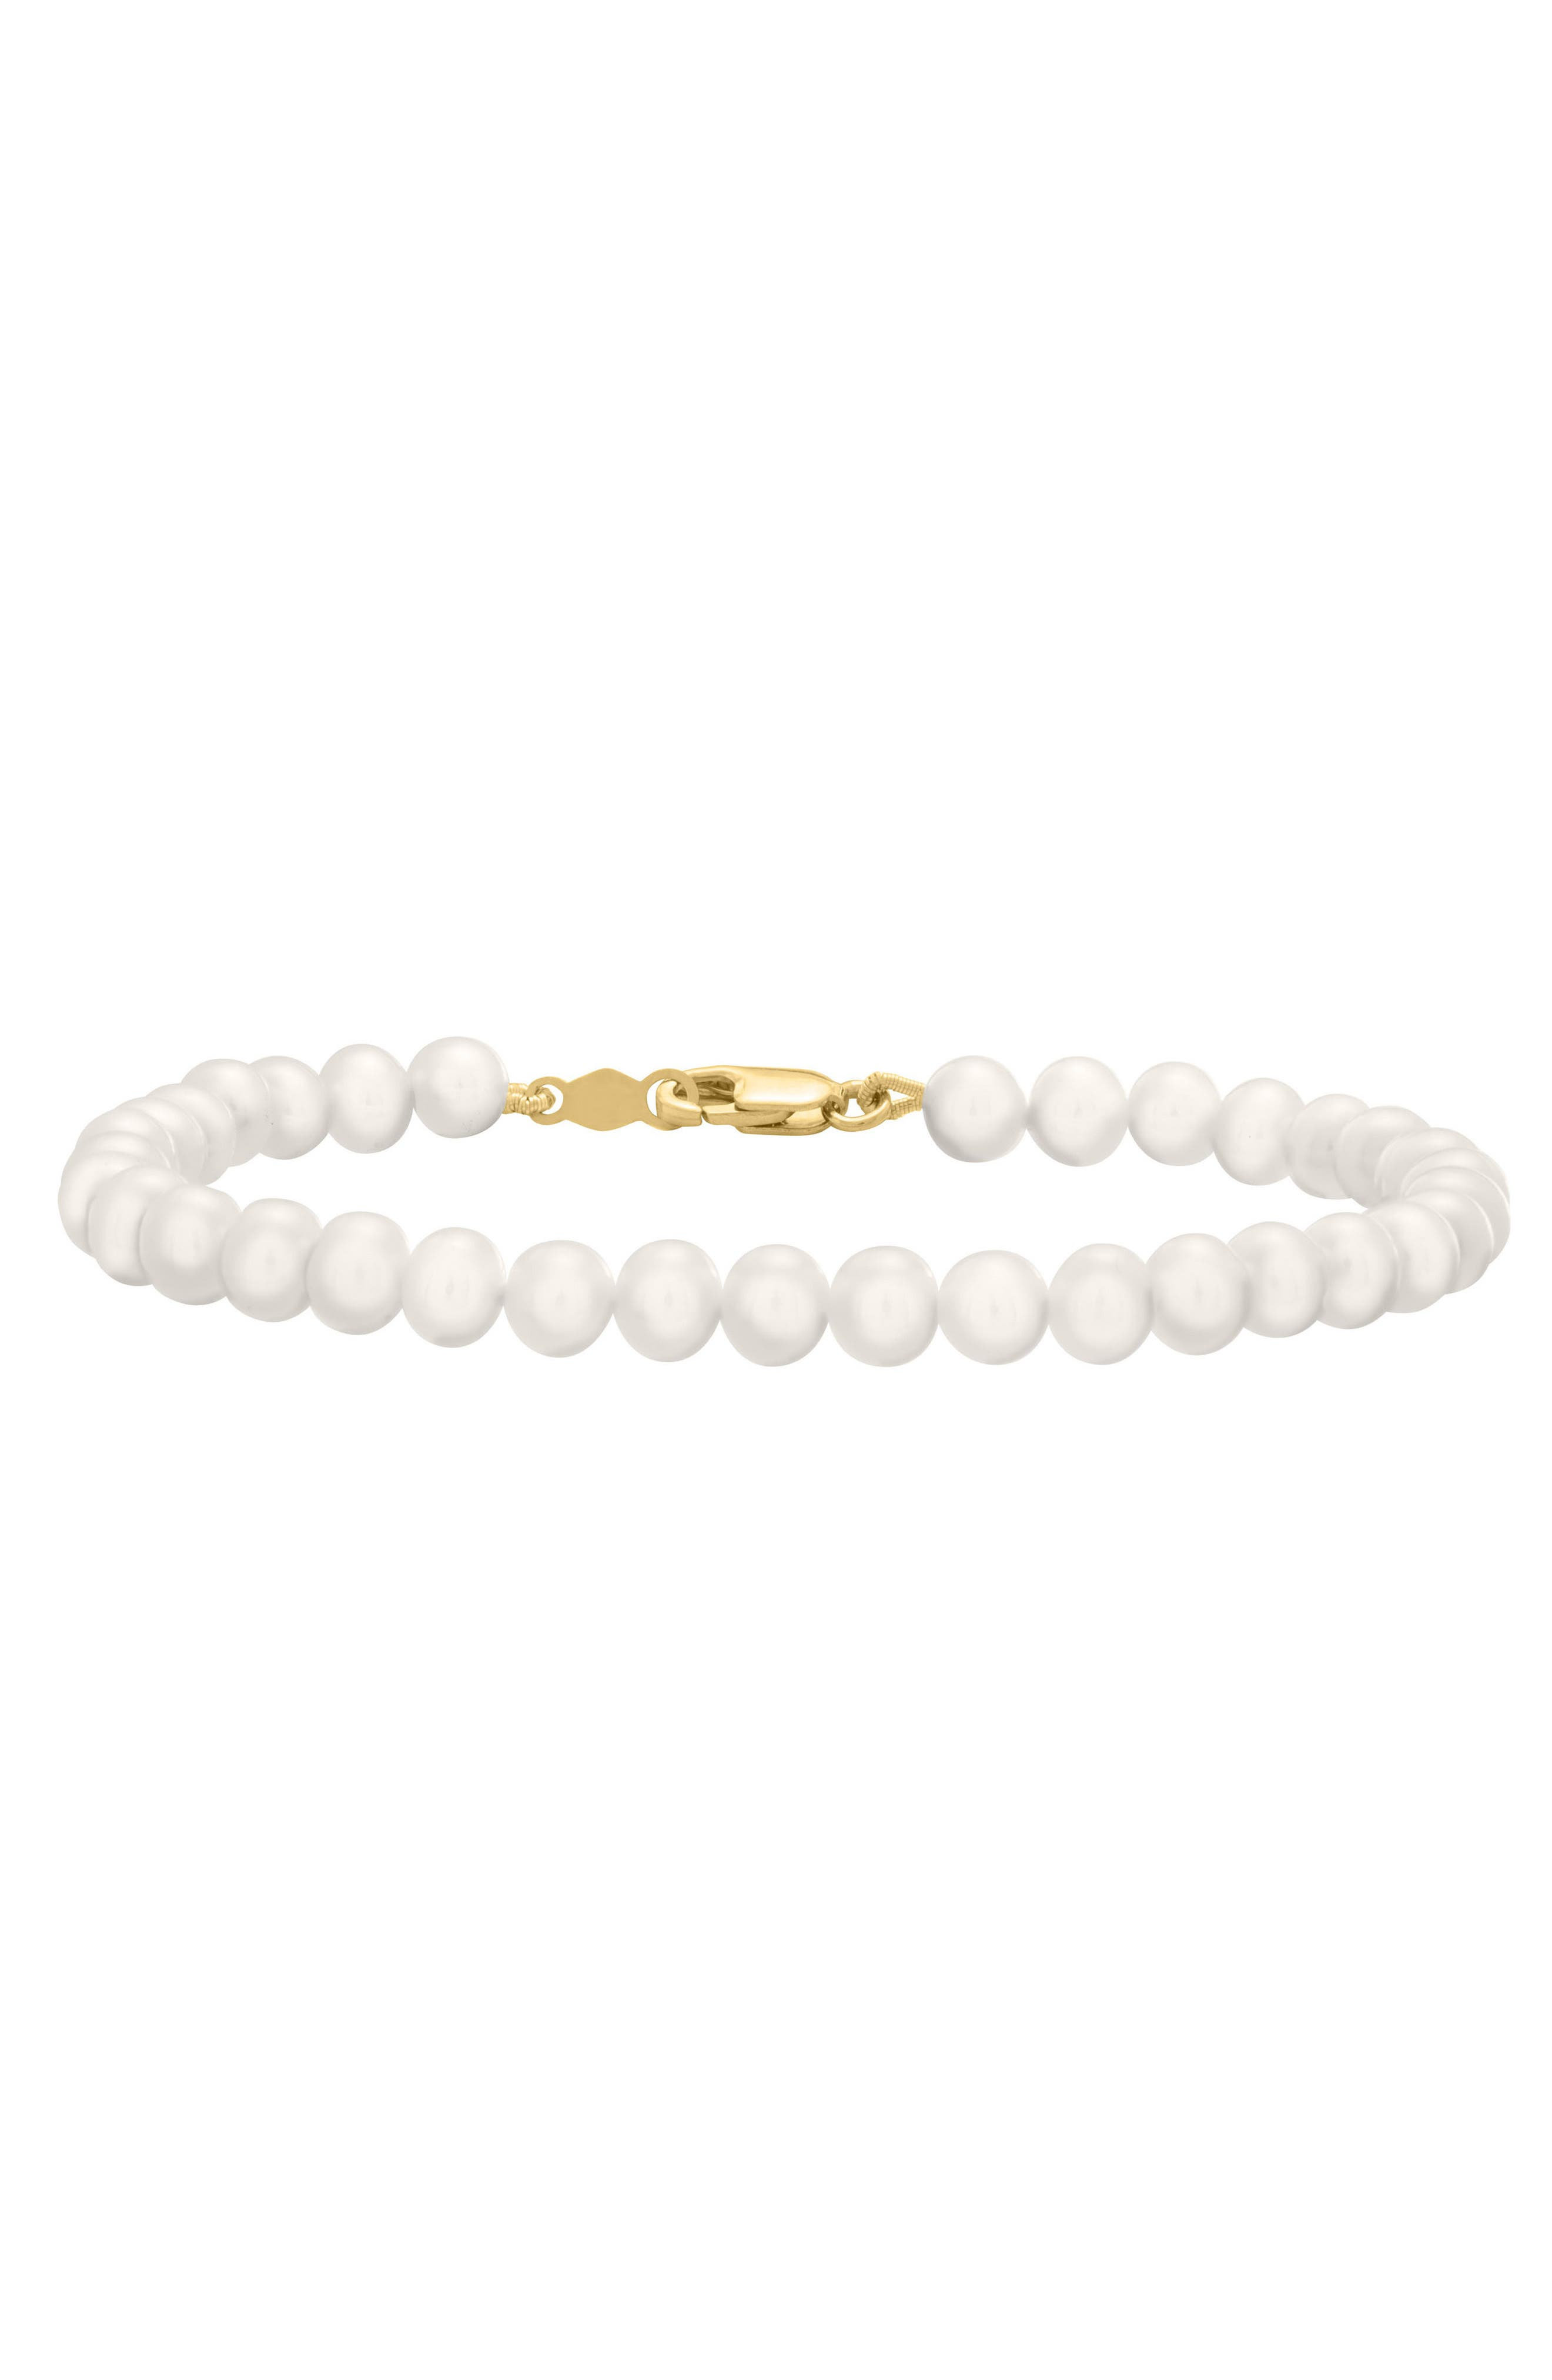 Infant Girls Mignonette Gold  Cultured Pearl Bracelet